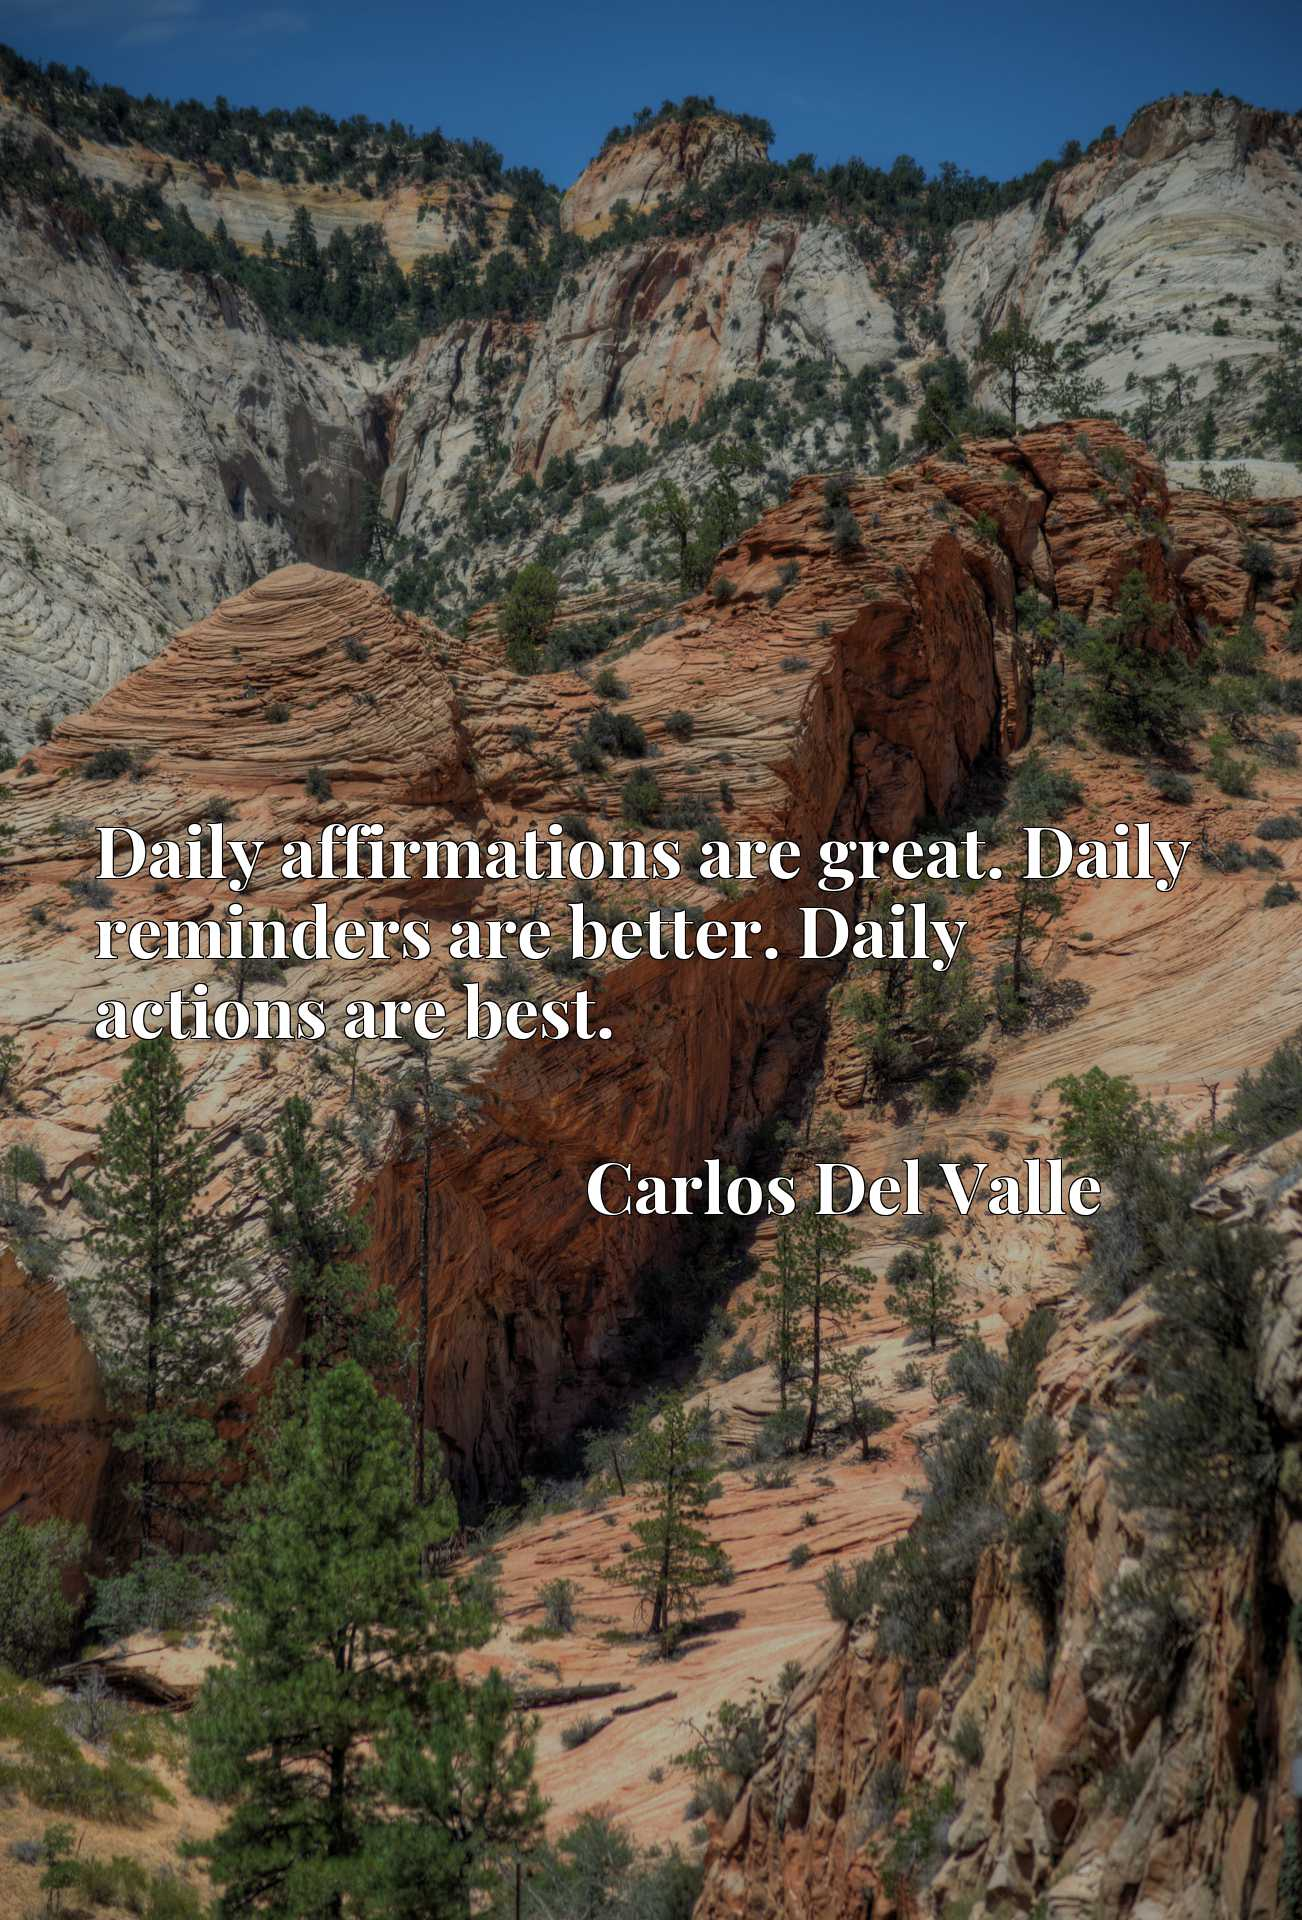 Daily affirmations are great. Daily reminders are better. Daily actions are best.